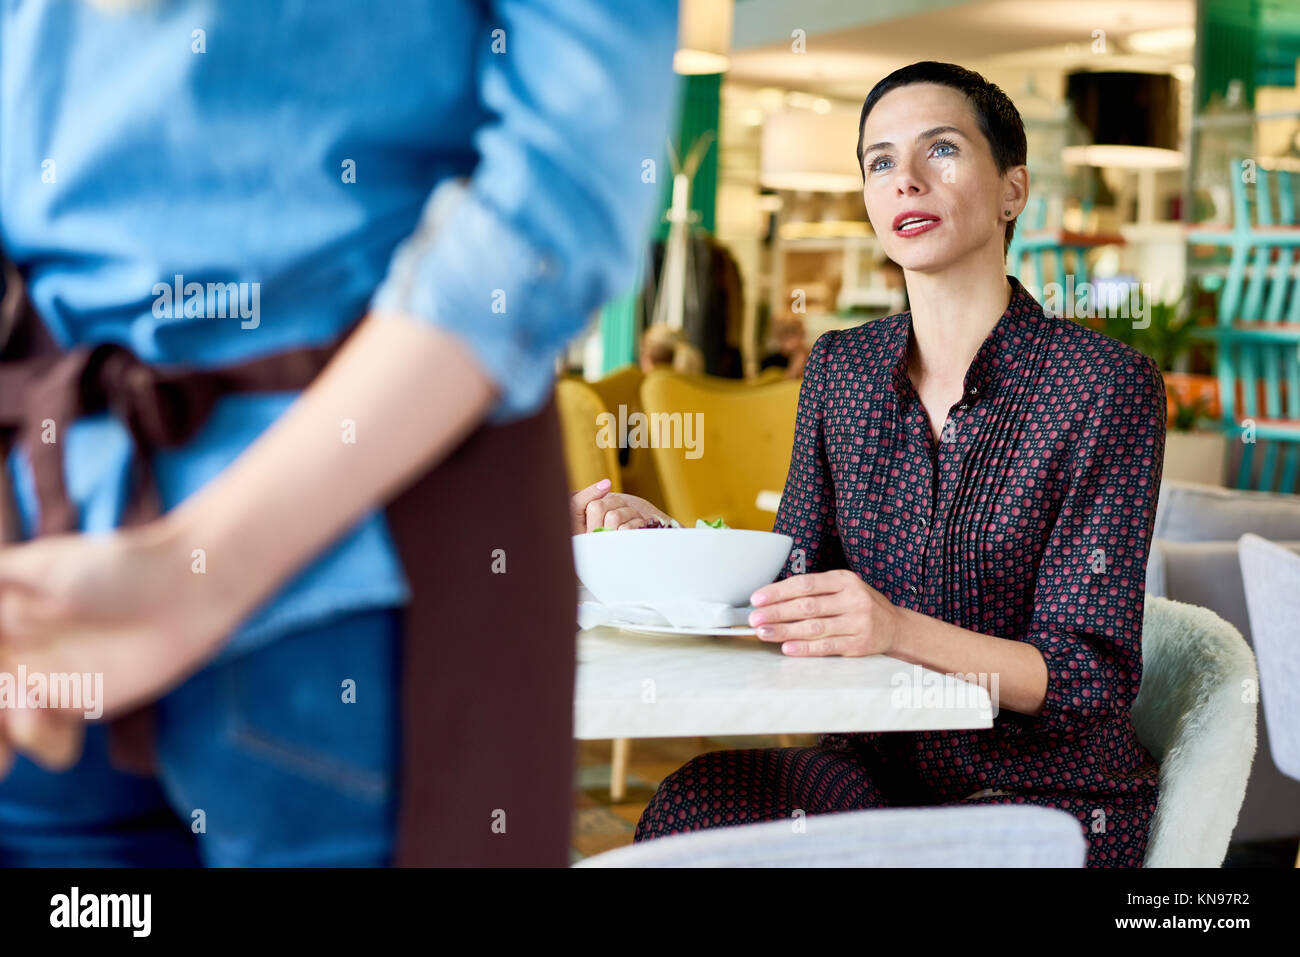 Woman Complaining in Cafe - Stock Image